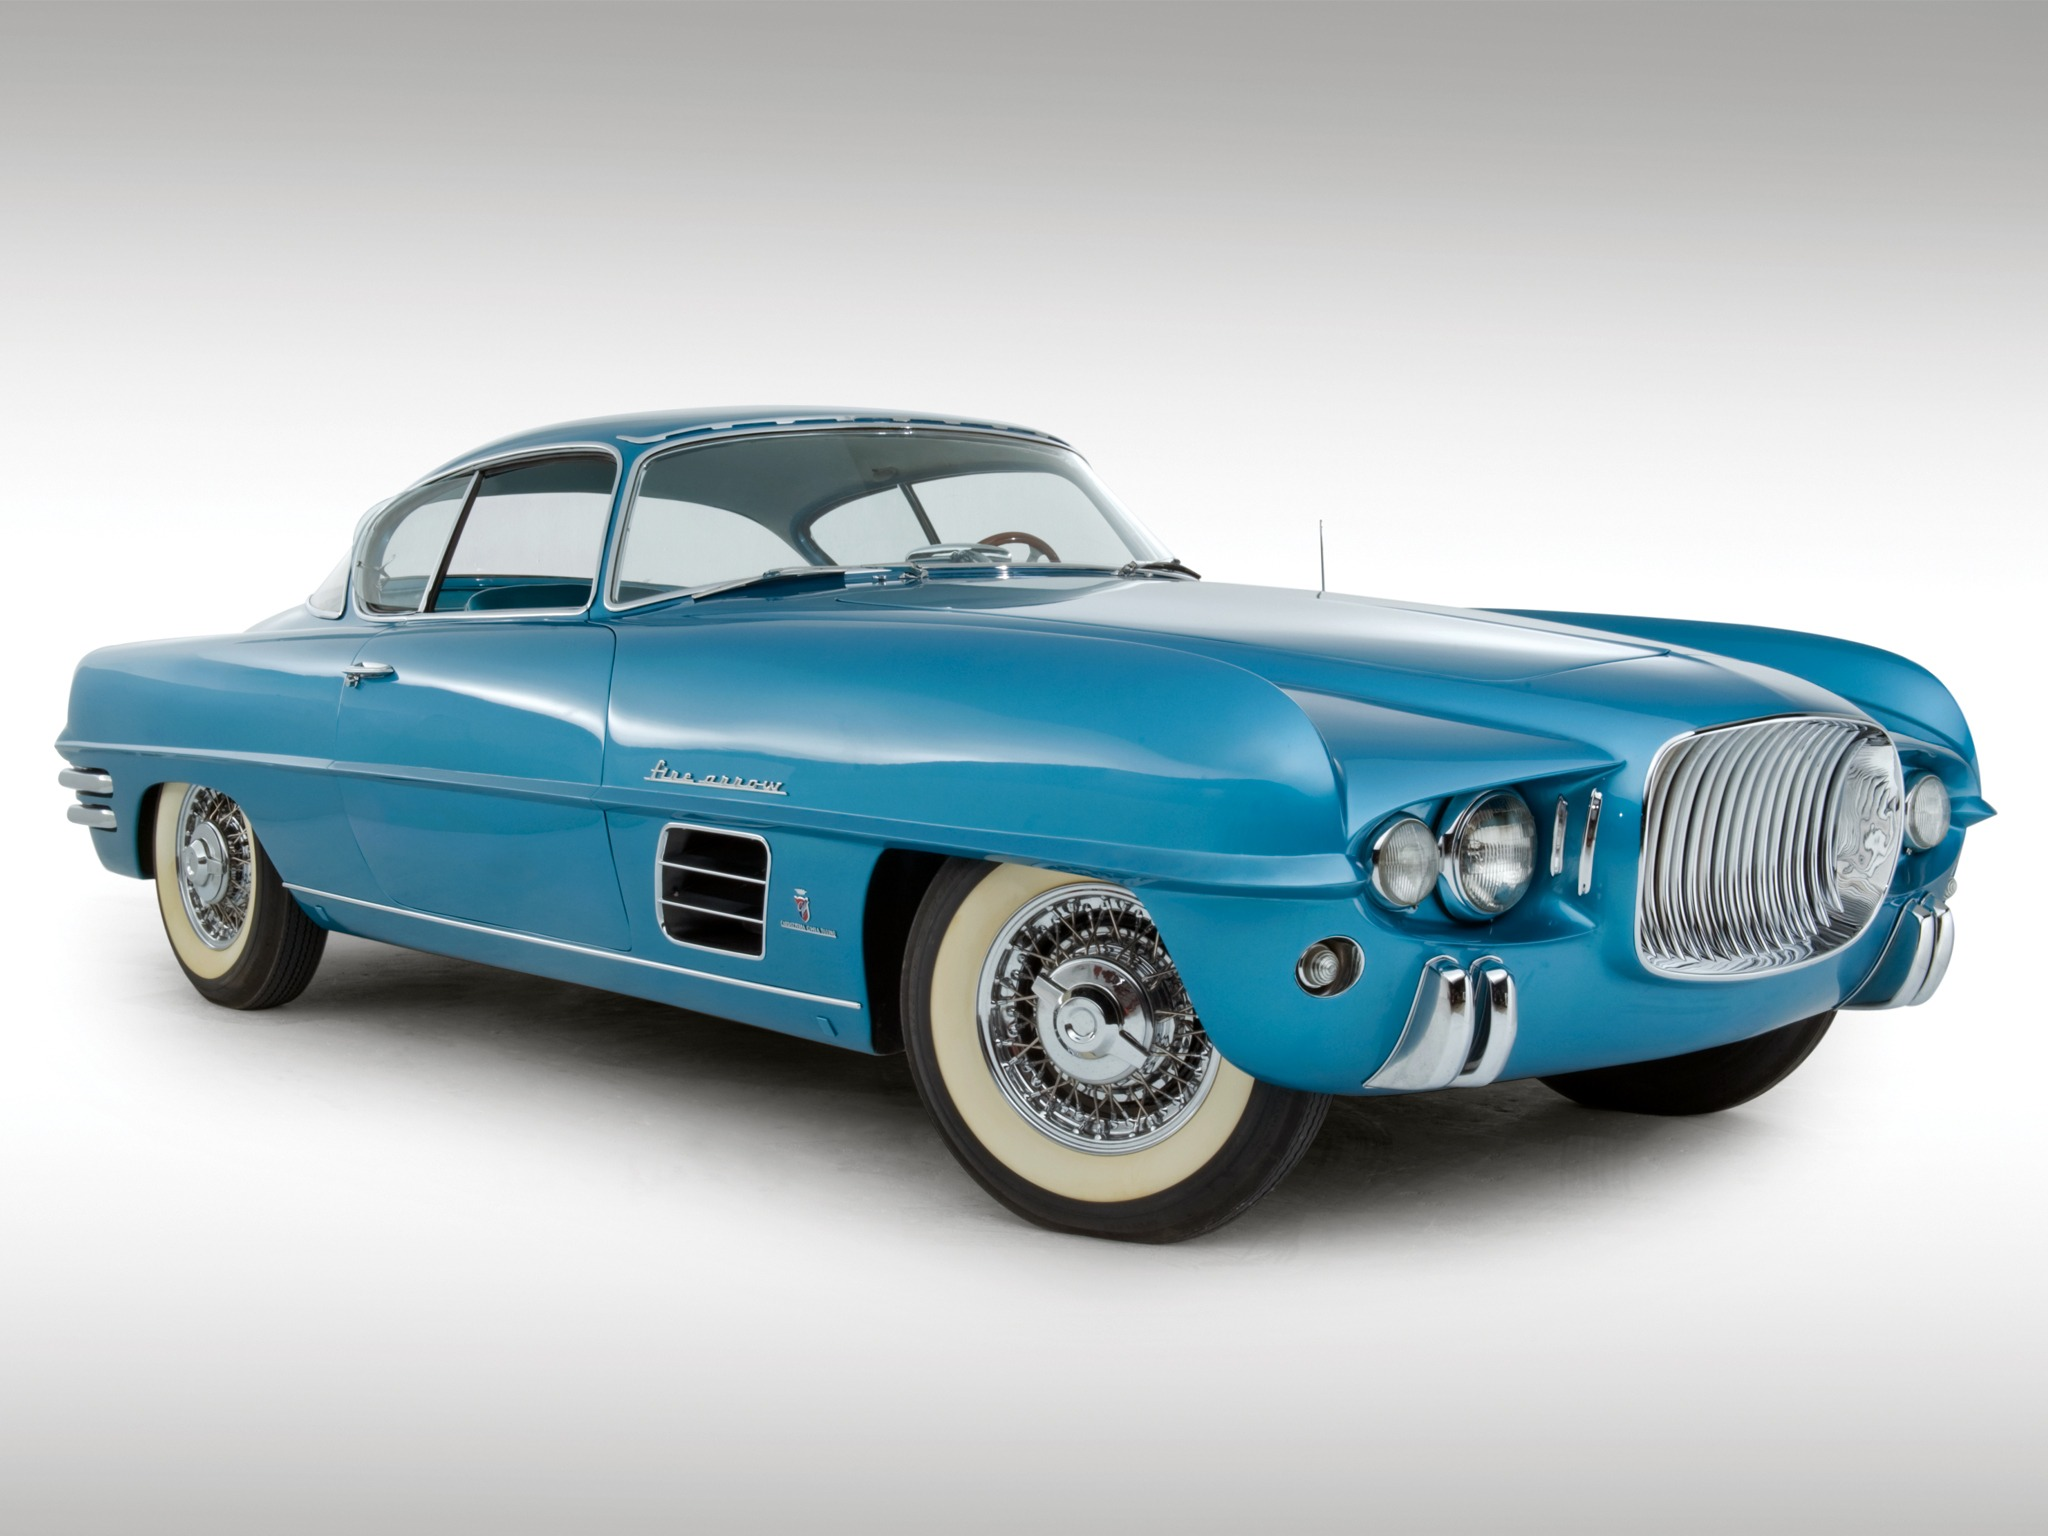 Dodge Firearrow Iii Sport Coupe Concept Car 1954 Old